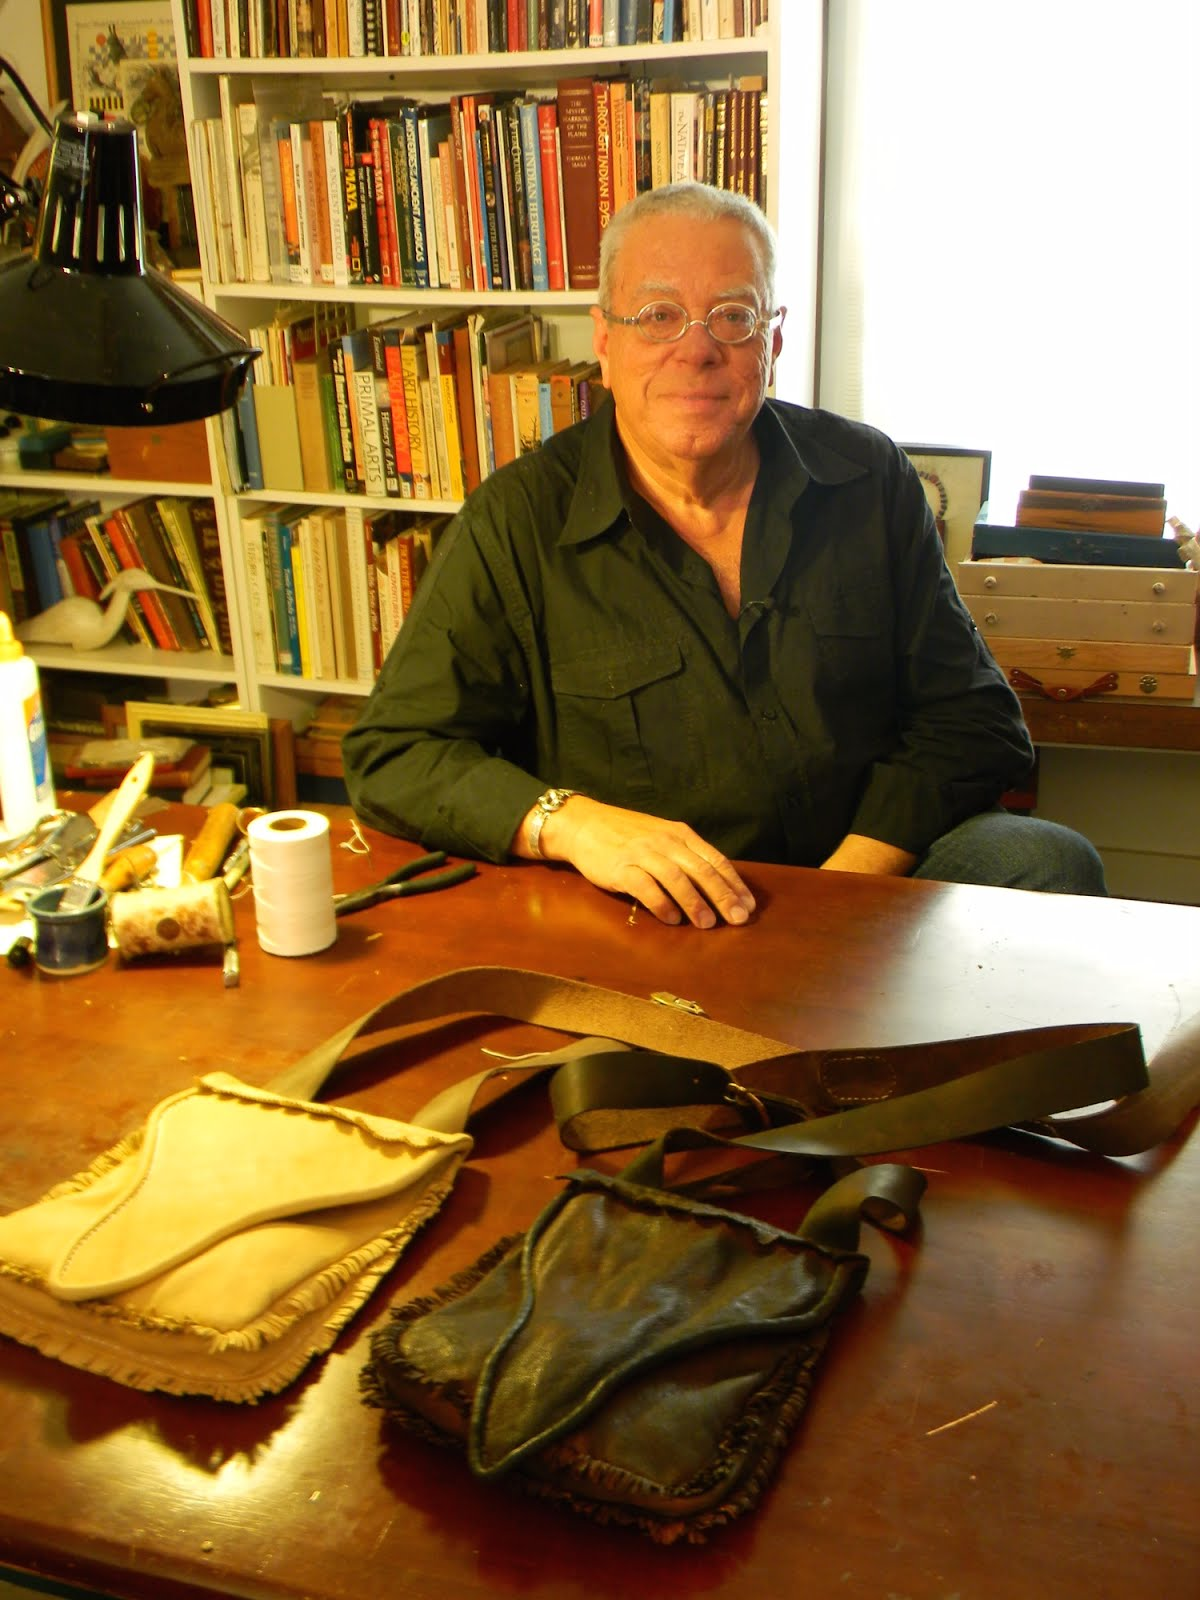 Recreating the Kentucky Rifle Hunting Pouch